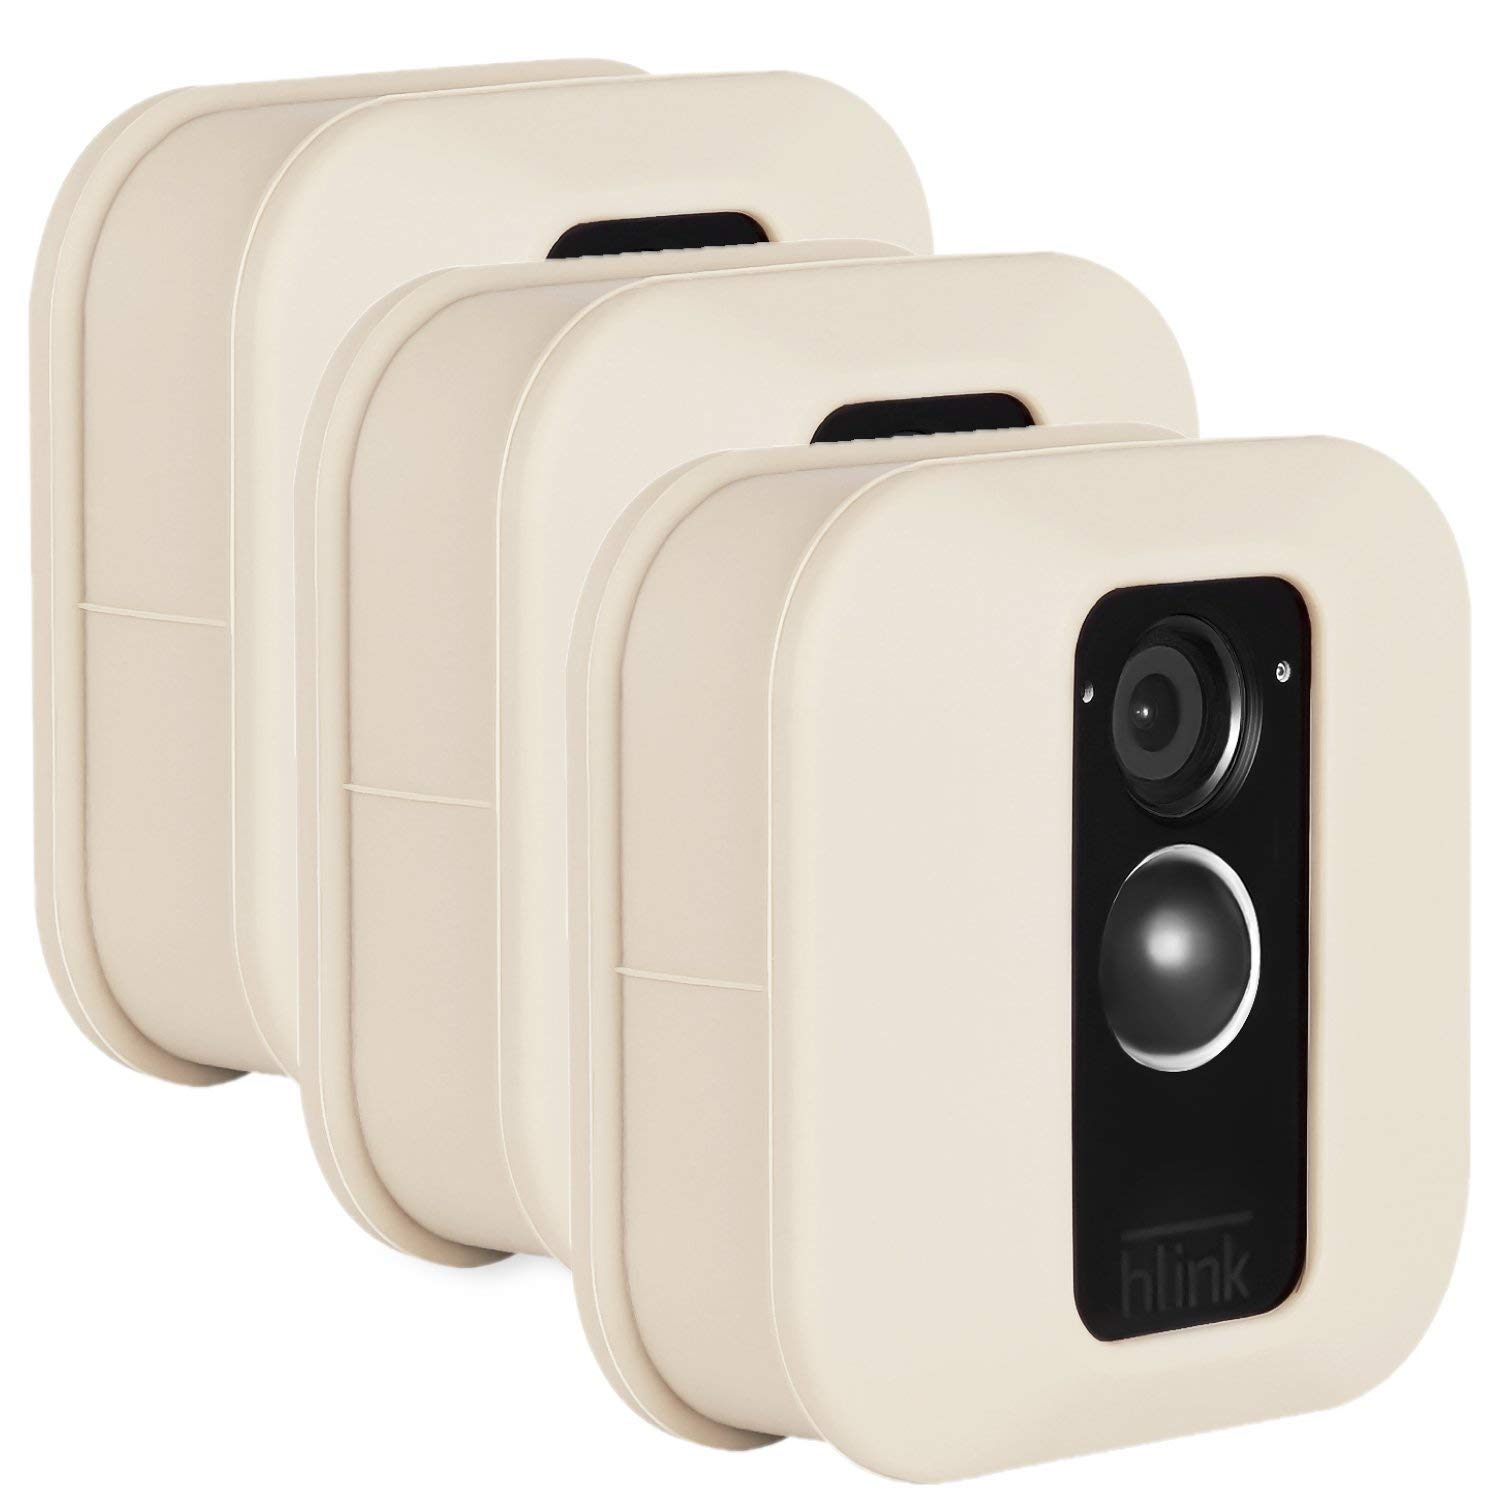 Blink XT Outdoor Camera Silicone Skin - Colorful Silicone Skin to Help Camouflage and Accessorize Your Home Security Camera - by Wasserstein (3 Pack, Beige)